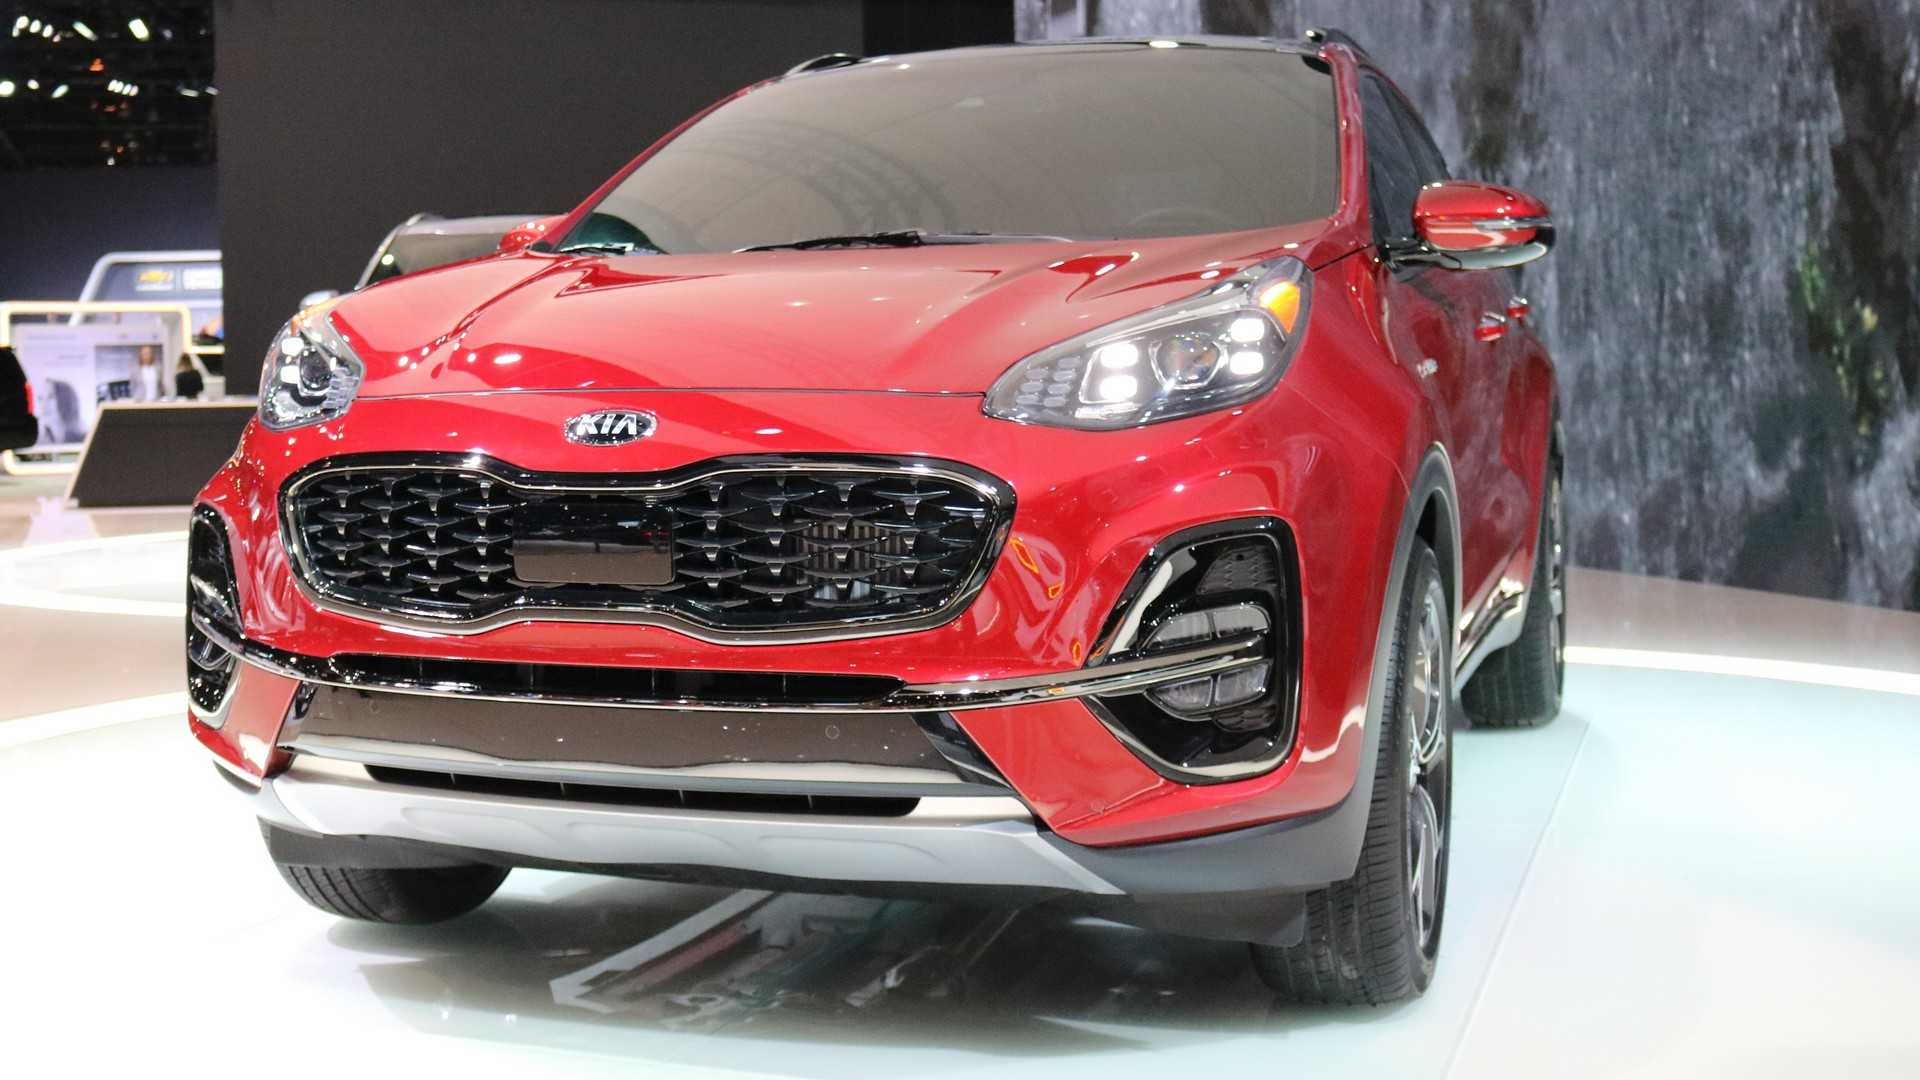 49 Great When Does The 2020 Kia Sportage Come Out Speed Test by When Does The 2020 Kia Sportage Come Out